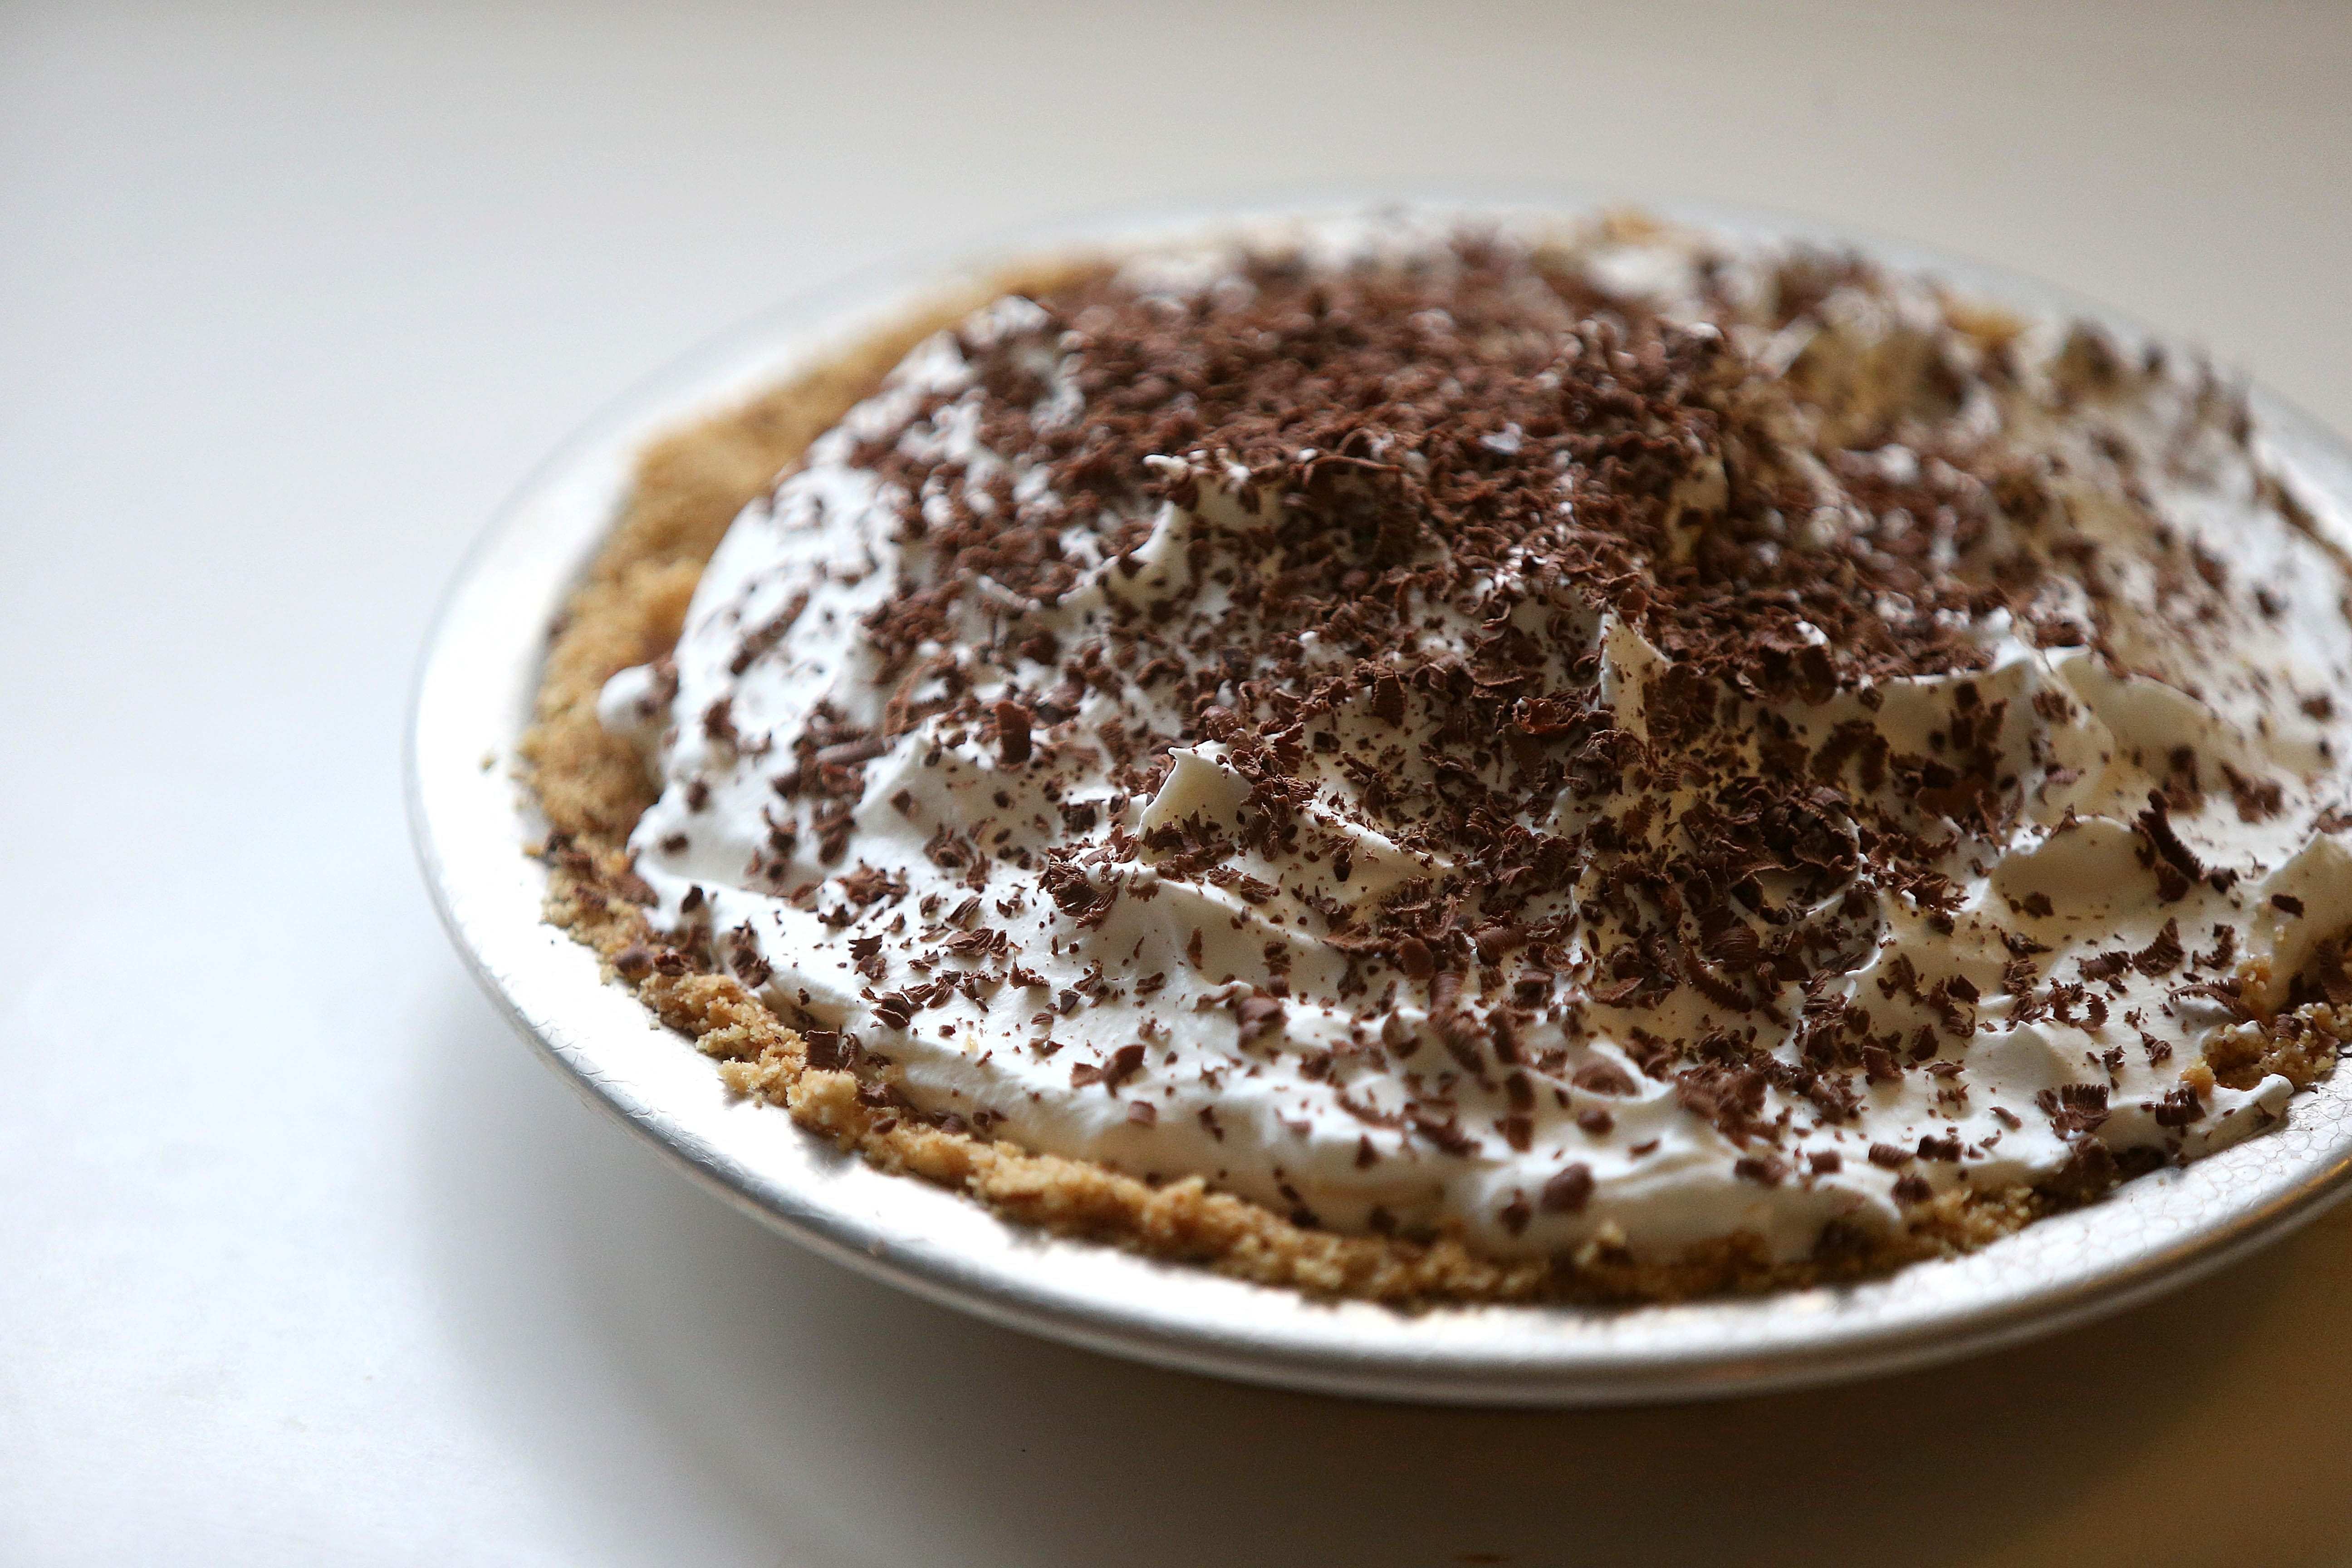 East Banoffee Pie: biscuits, butter, caramel, whipped cream, chocolate.